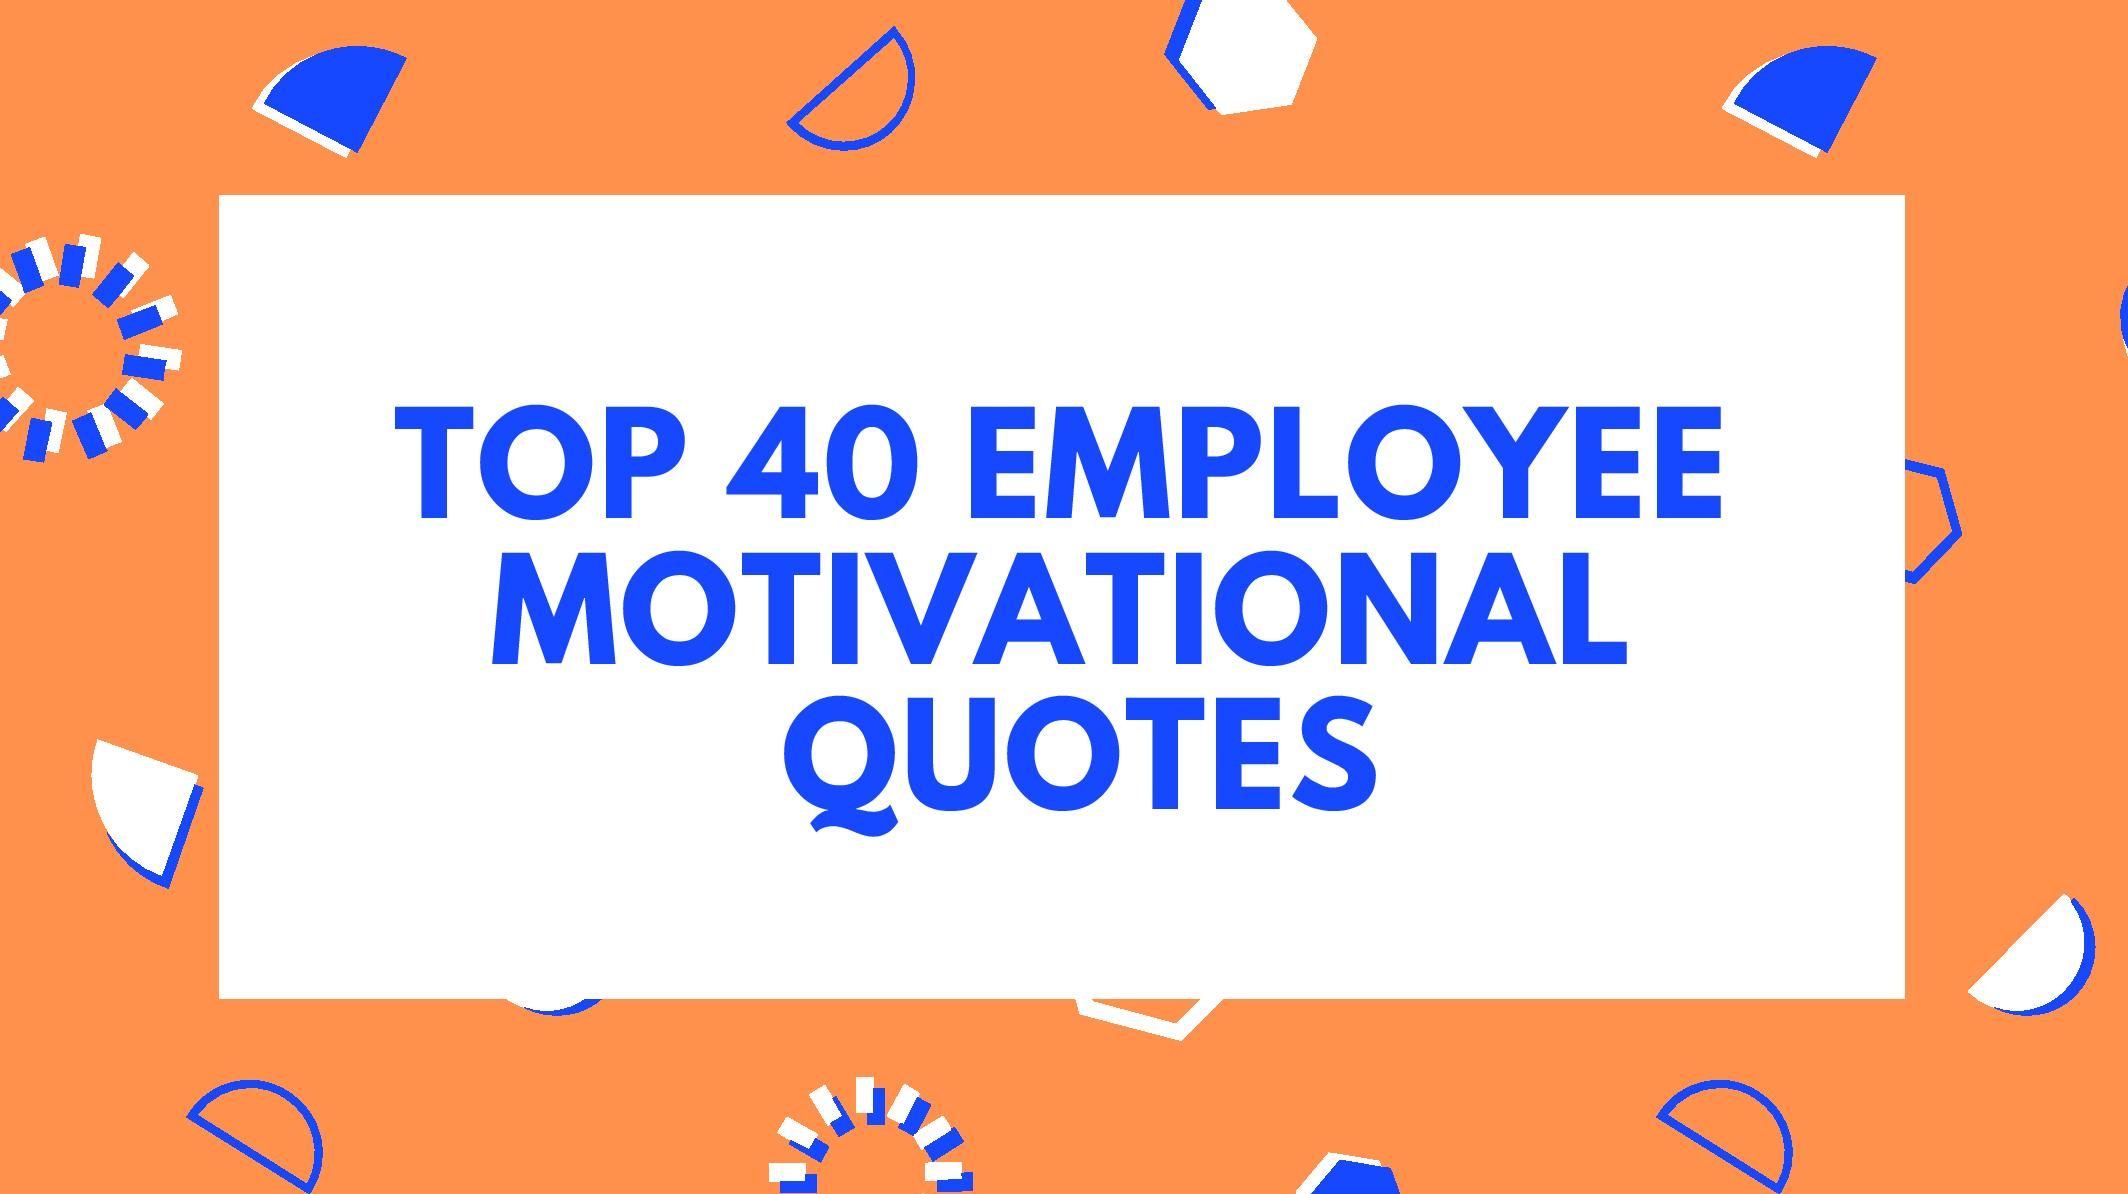 Top 40 Employee Motivational Quotes To Inspire Your Workforce